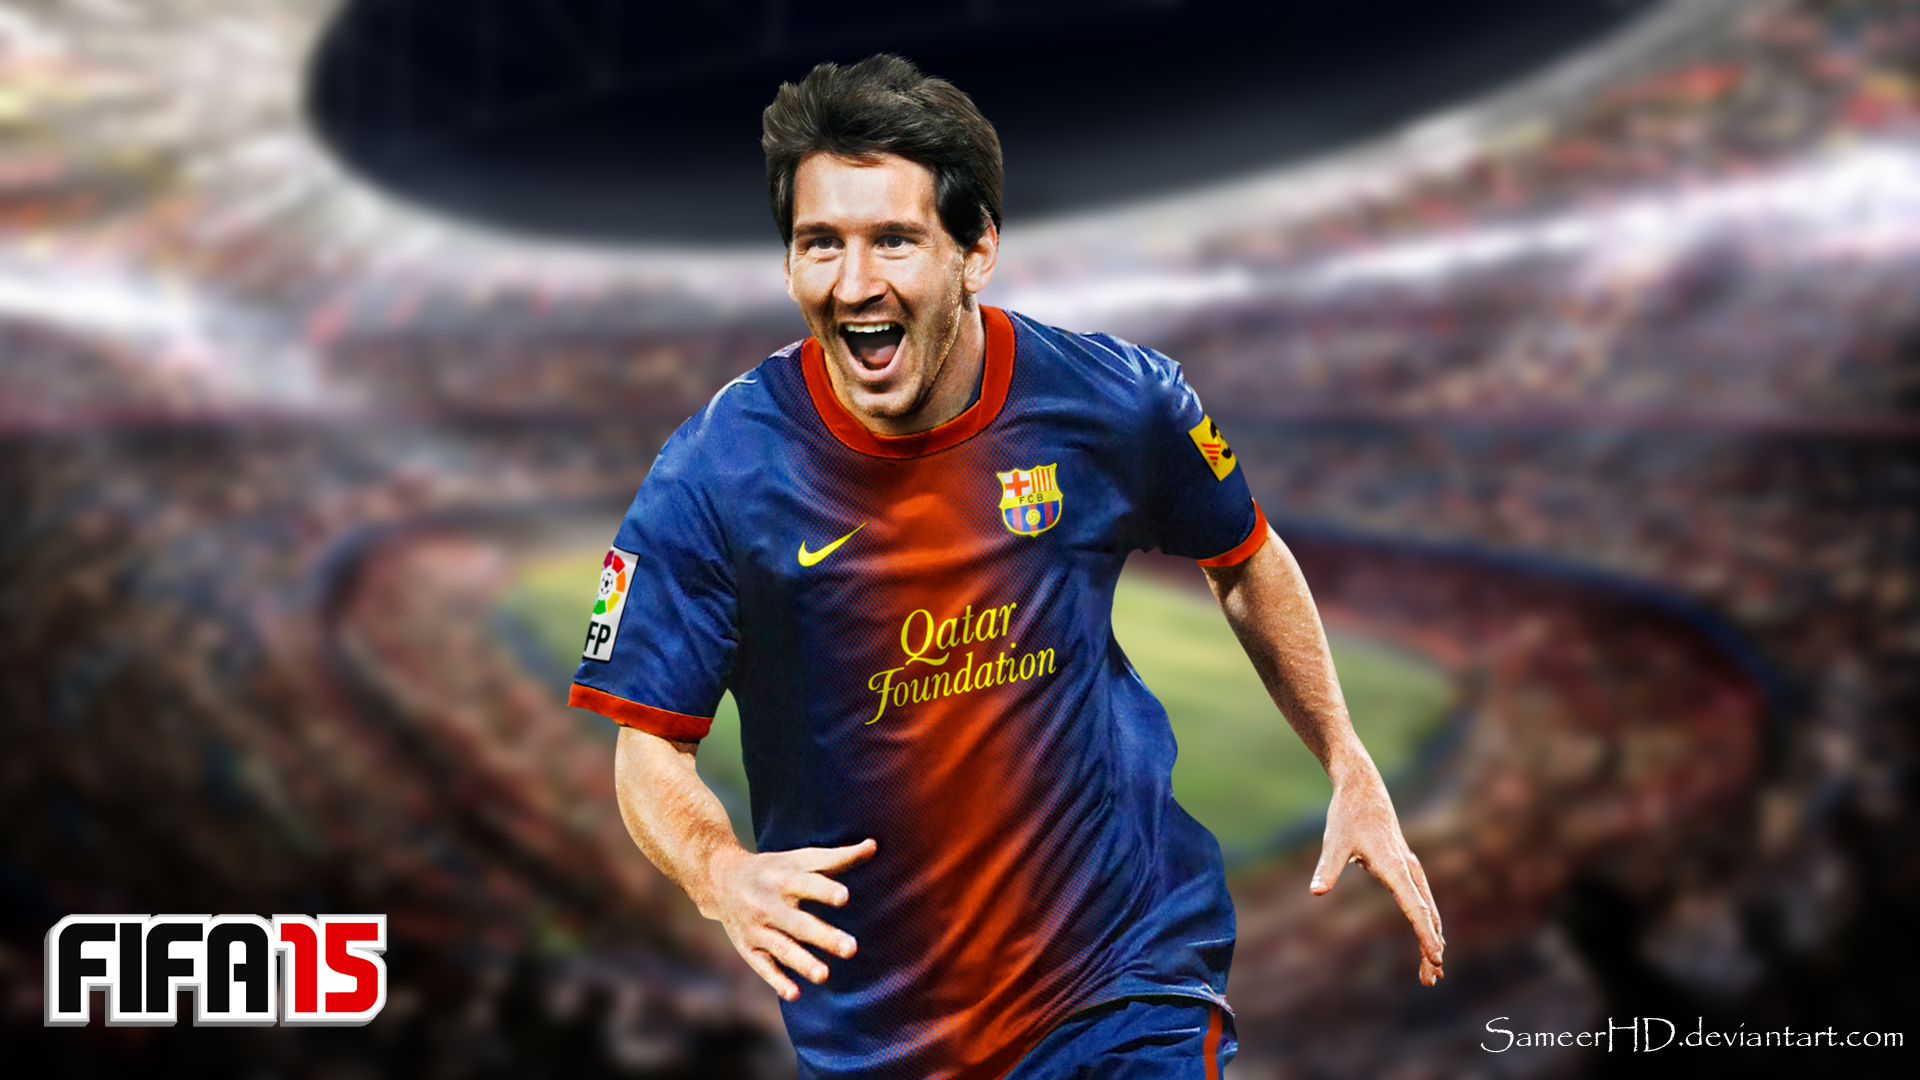 fifa 15 lionel messi wallpapersameerhd on deviantart